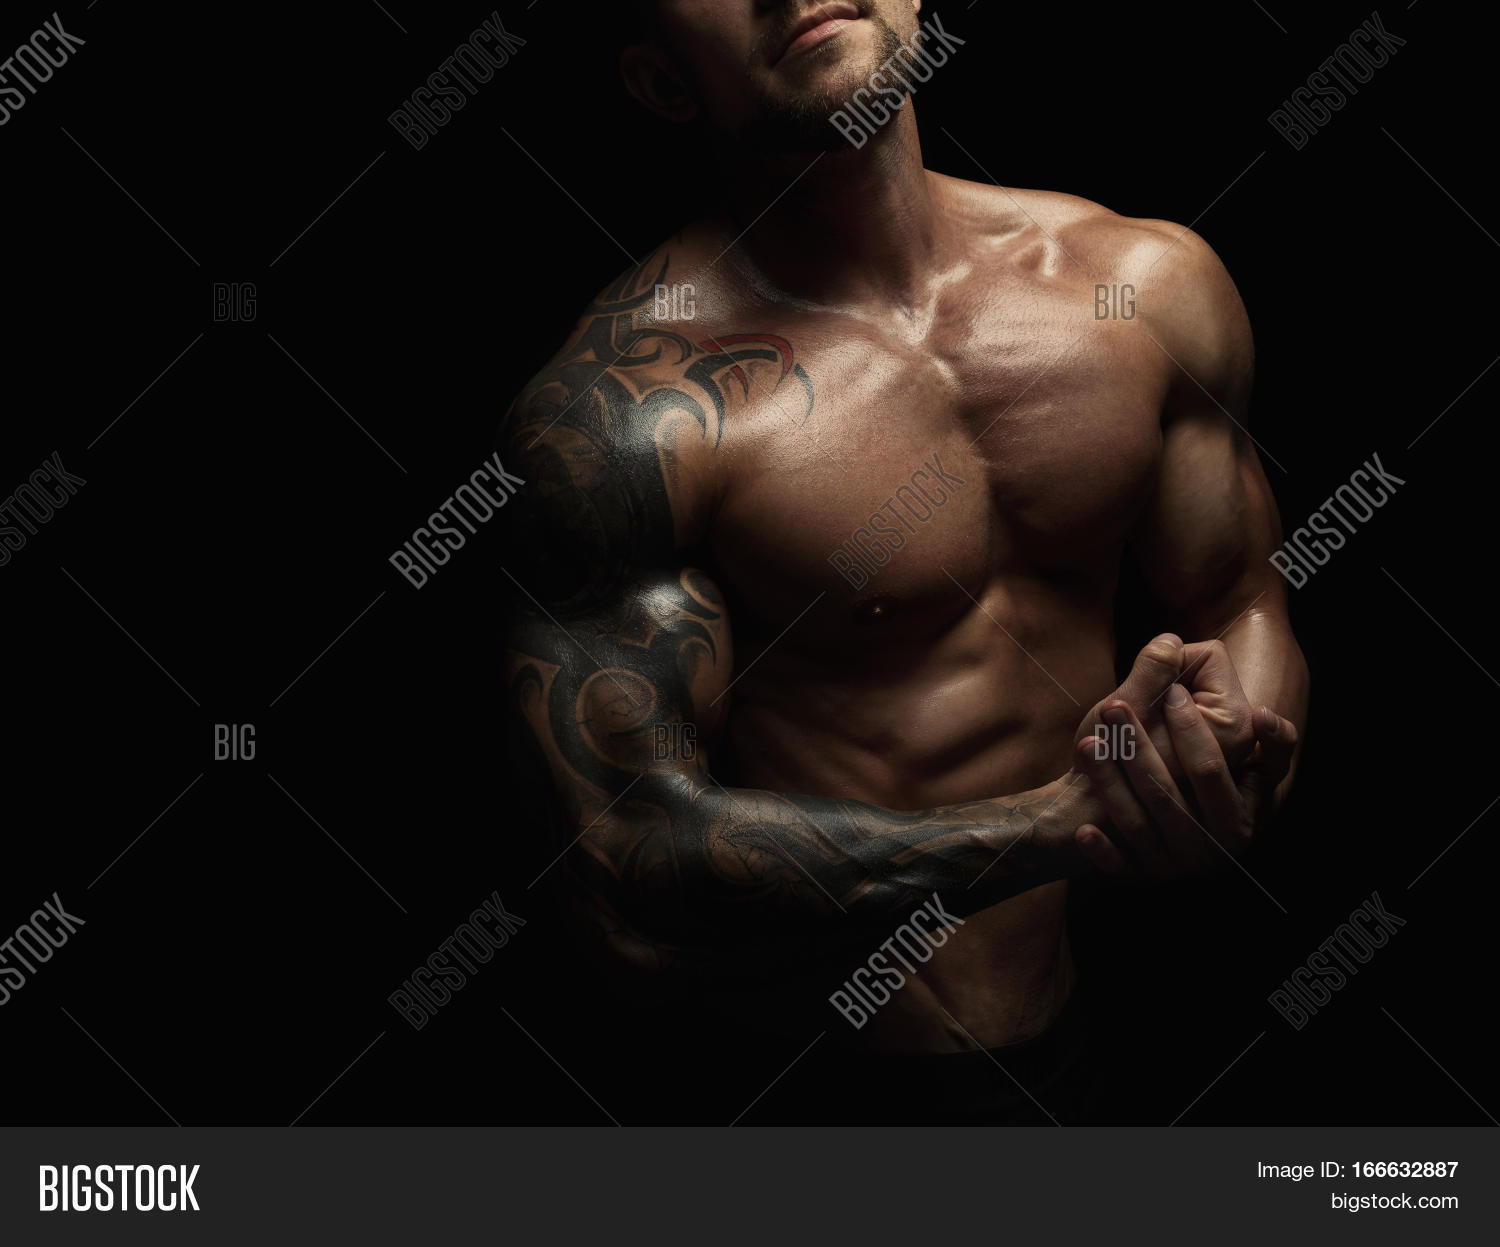 Strong Athletic Man Image Photo Free Trial Bigstock